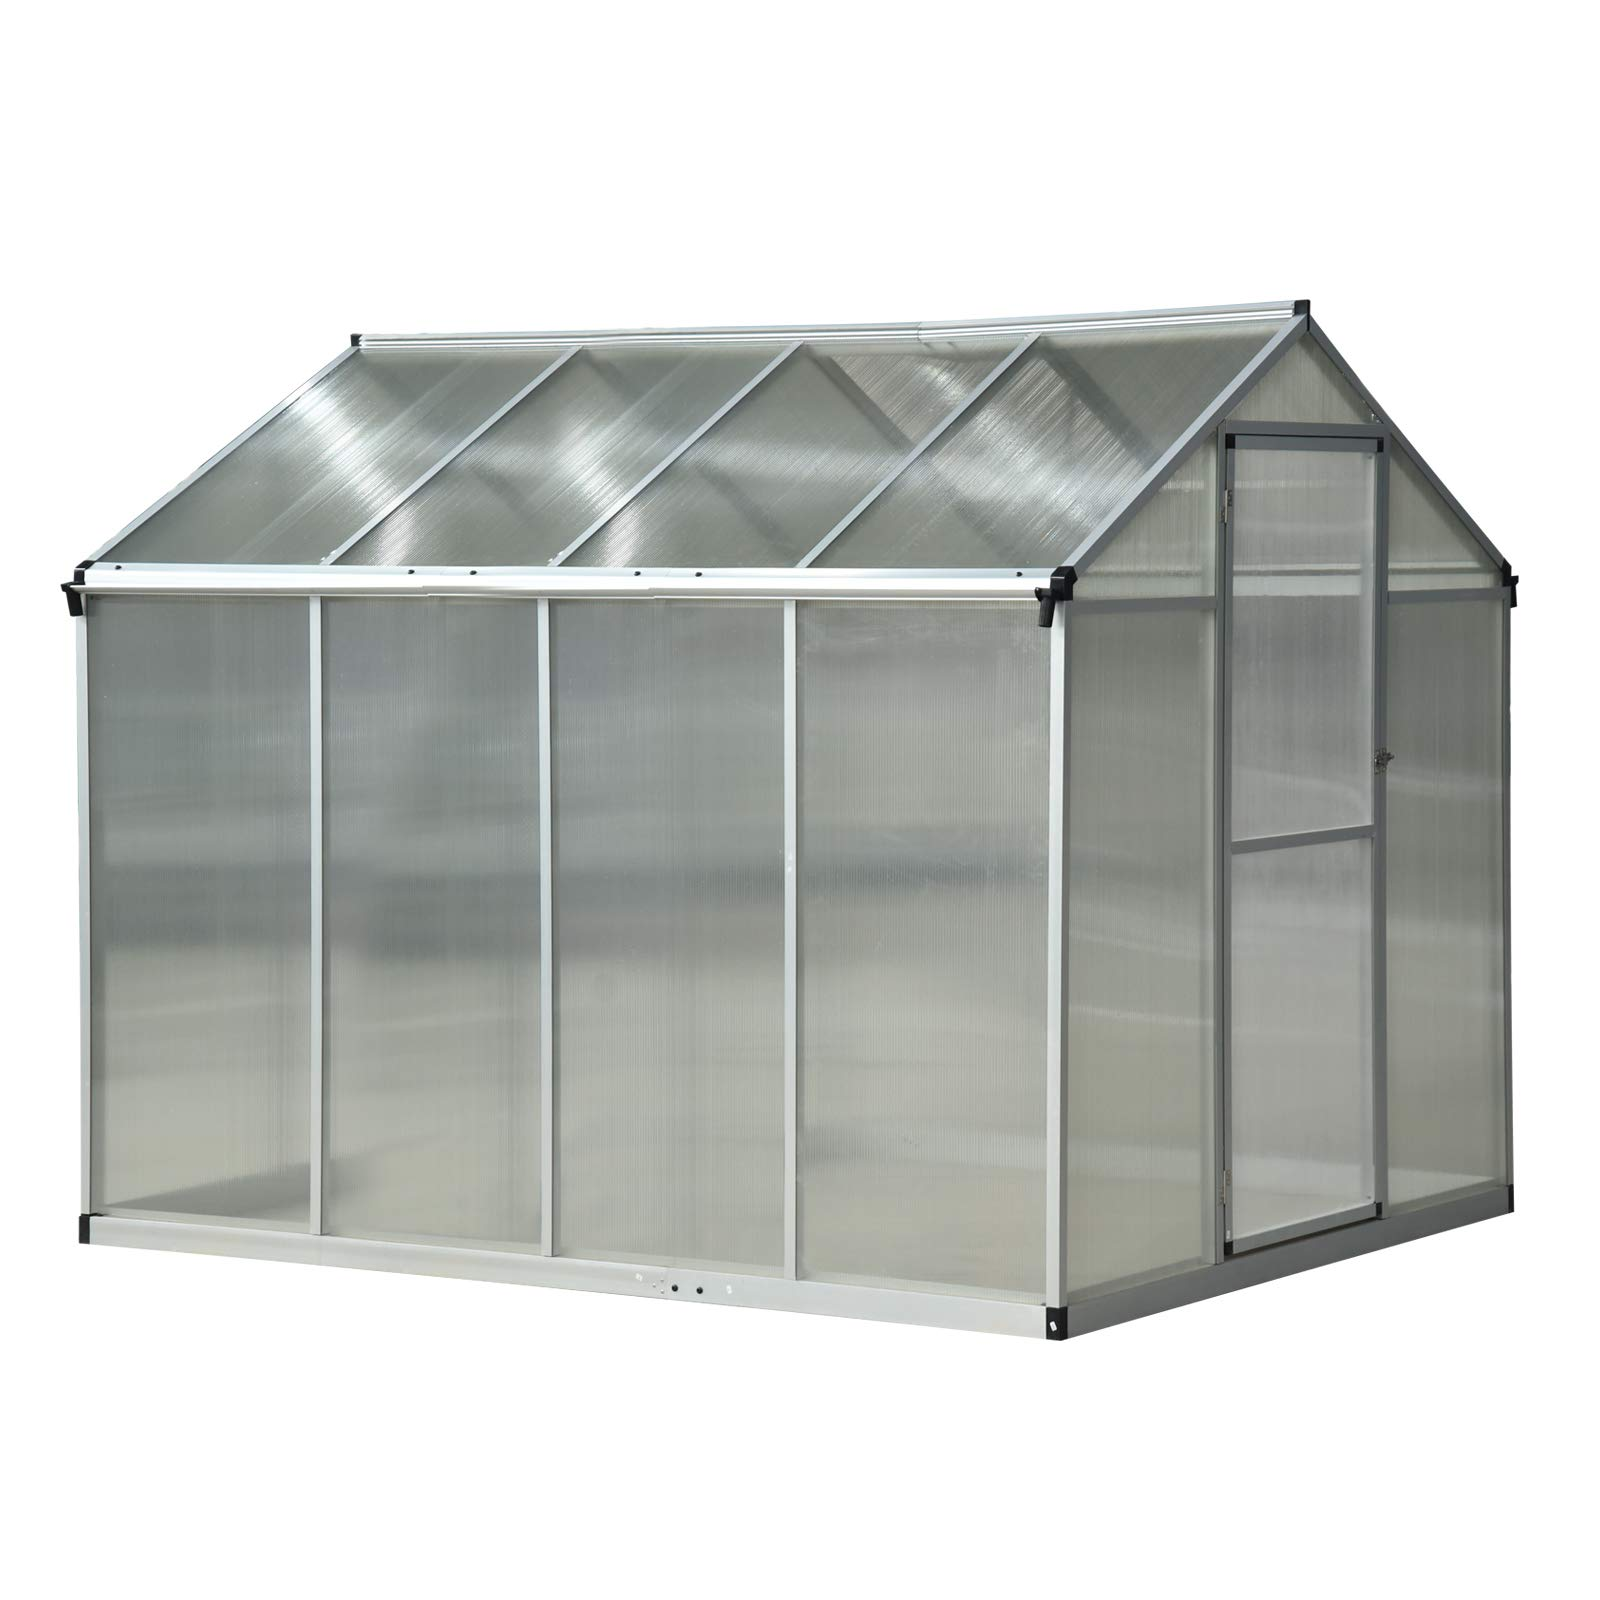 Outsunny 8' x 6' x 6.5 Polycarbonate Aluminum Framed Portable Walk-in Garden Greenhouse with Opening Roof